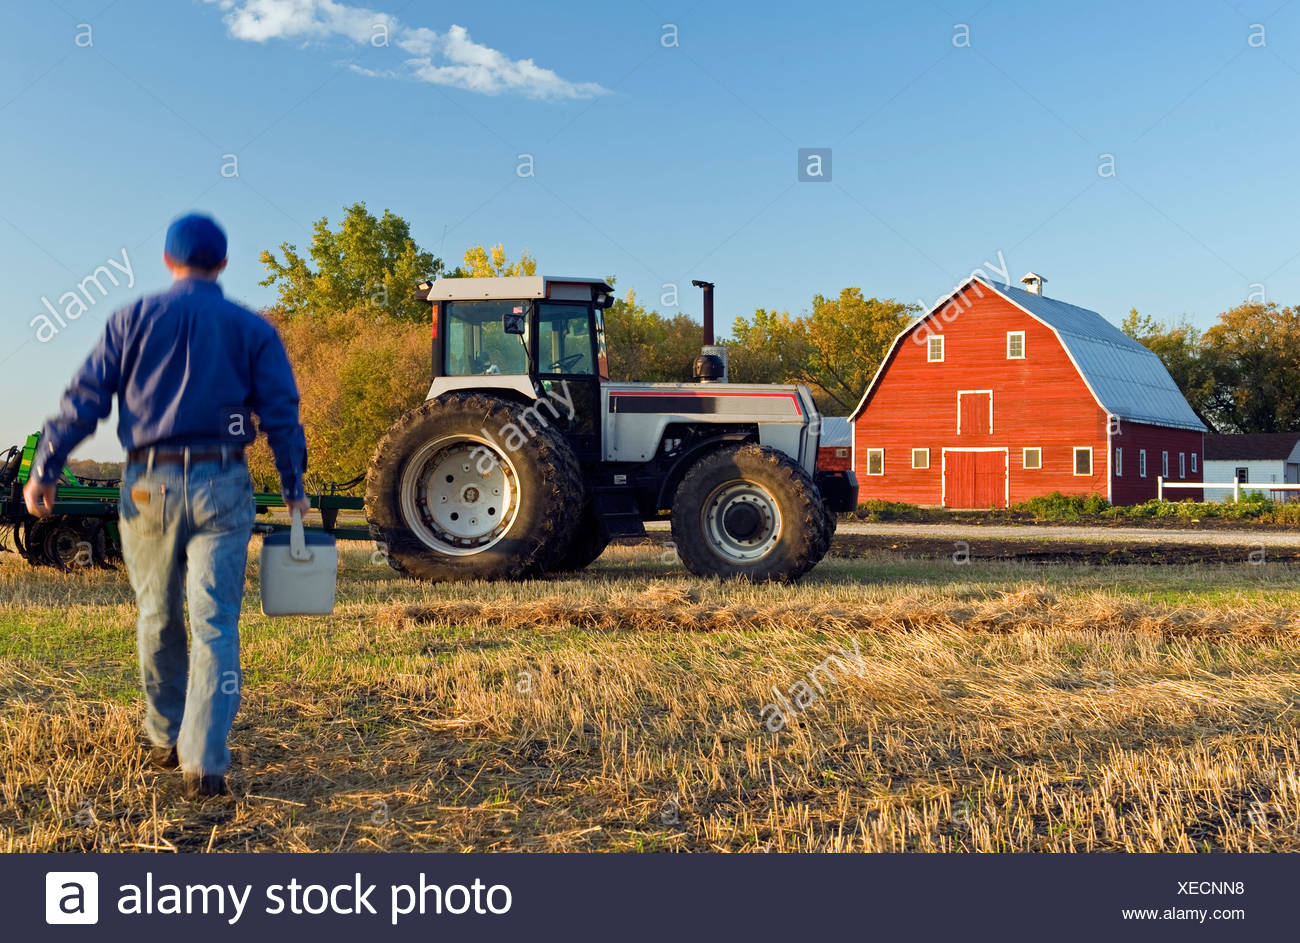 Farmer with a lunch box walking in a field of grain stubble towards his tractor, Grande Pointe, Manitoba, Canada - Stock Image